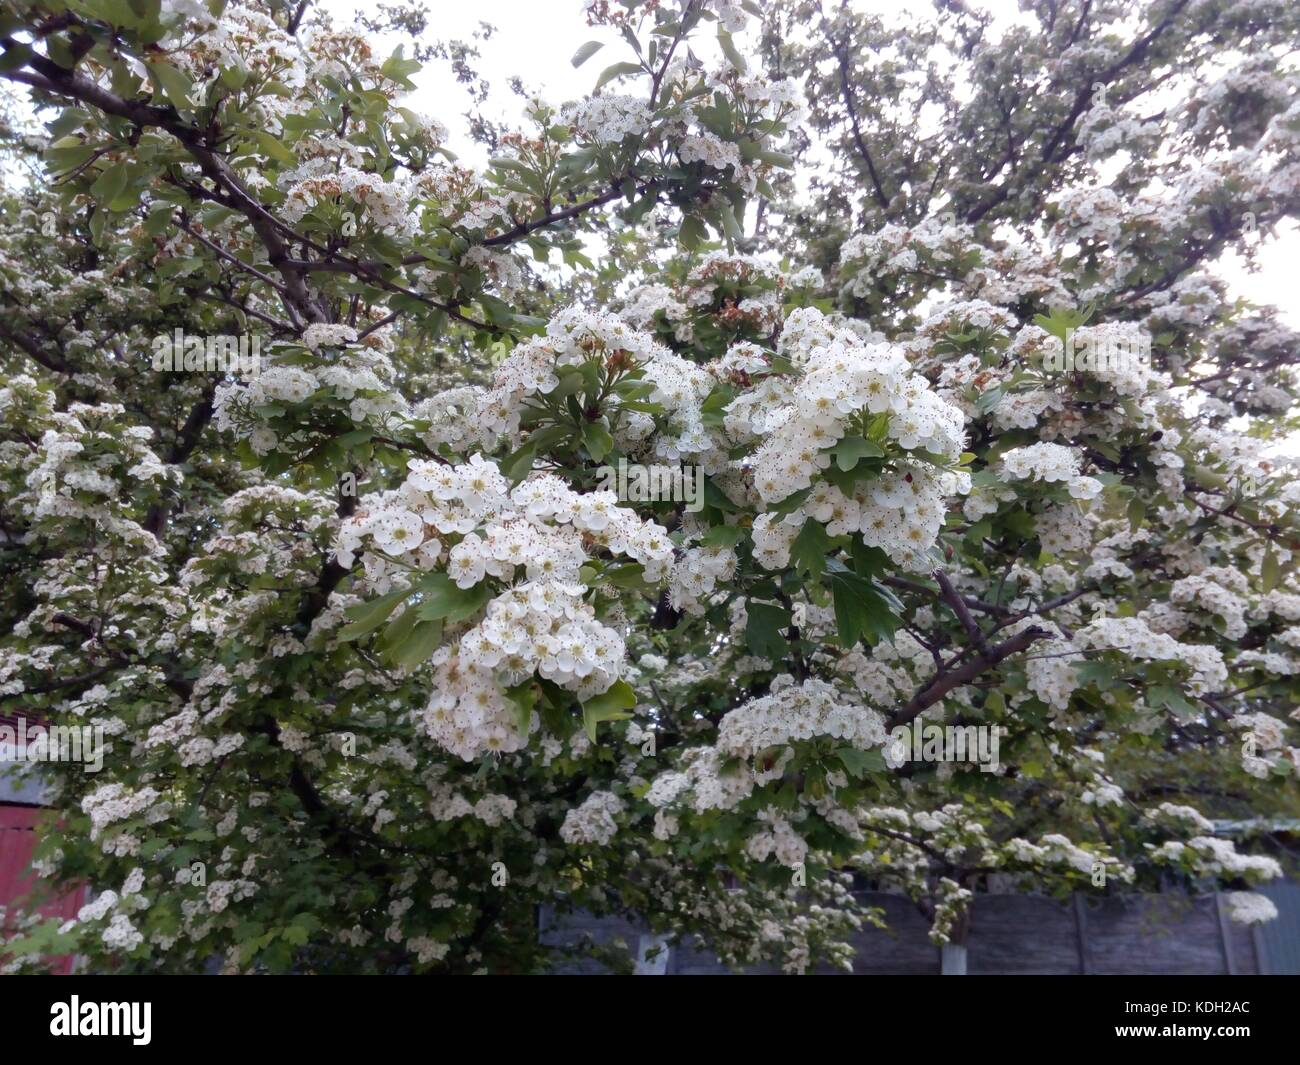 Branches of a blossoming fruit tree with small white flowers in branches of a blossoming fruit tree with small white flowers in spring day mightylinksfo